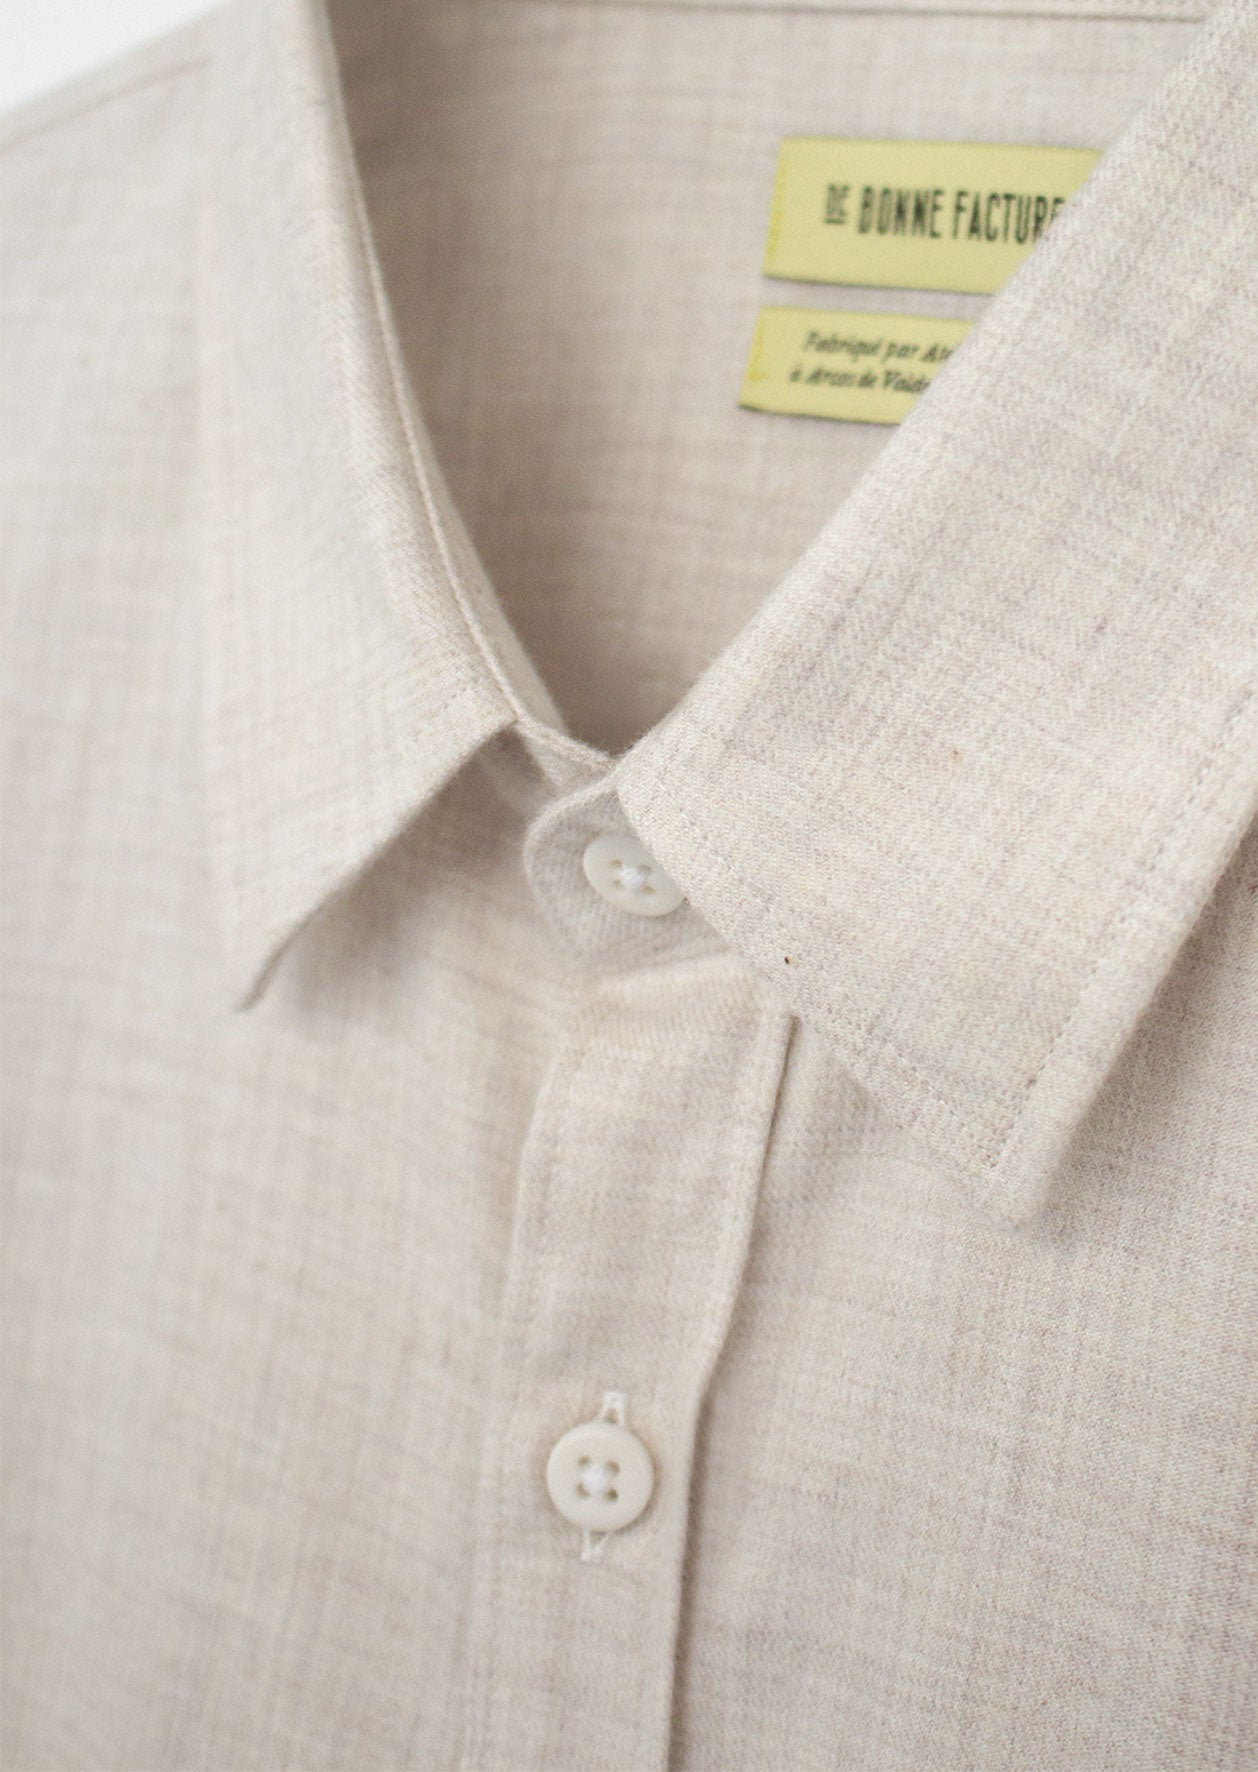 De Bonne Facture - Essential shirt - Cotton flannel - Light beige